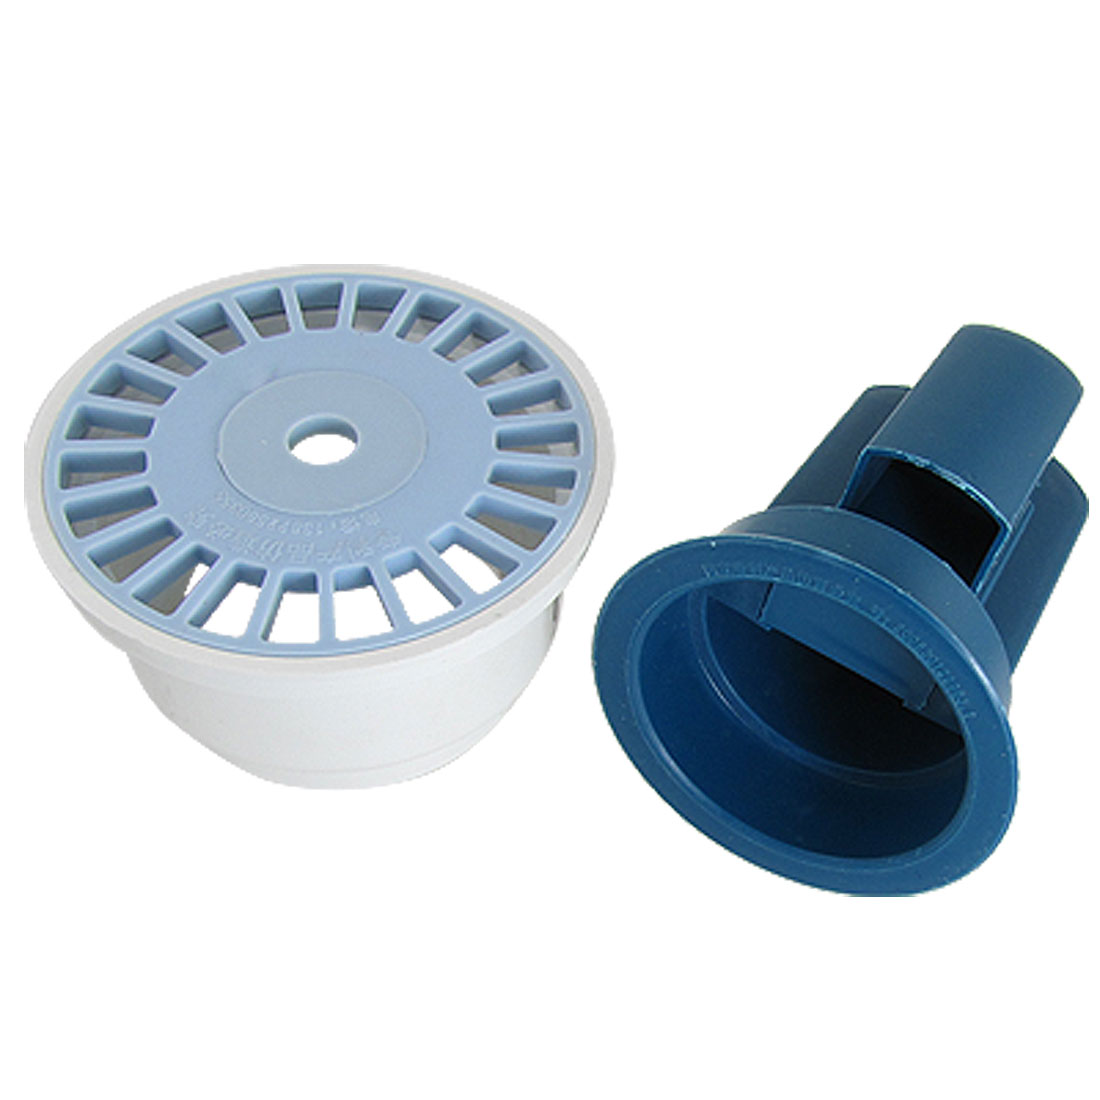 Bathroom Shower Round Cover Waste Grate Floor Drain Strainer 3.5""